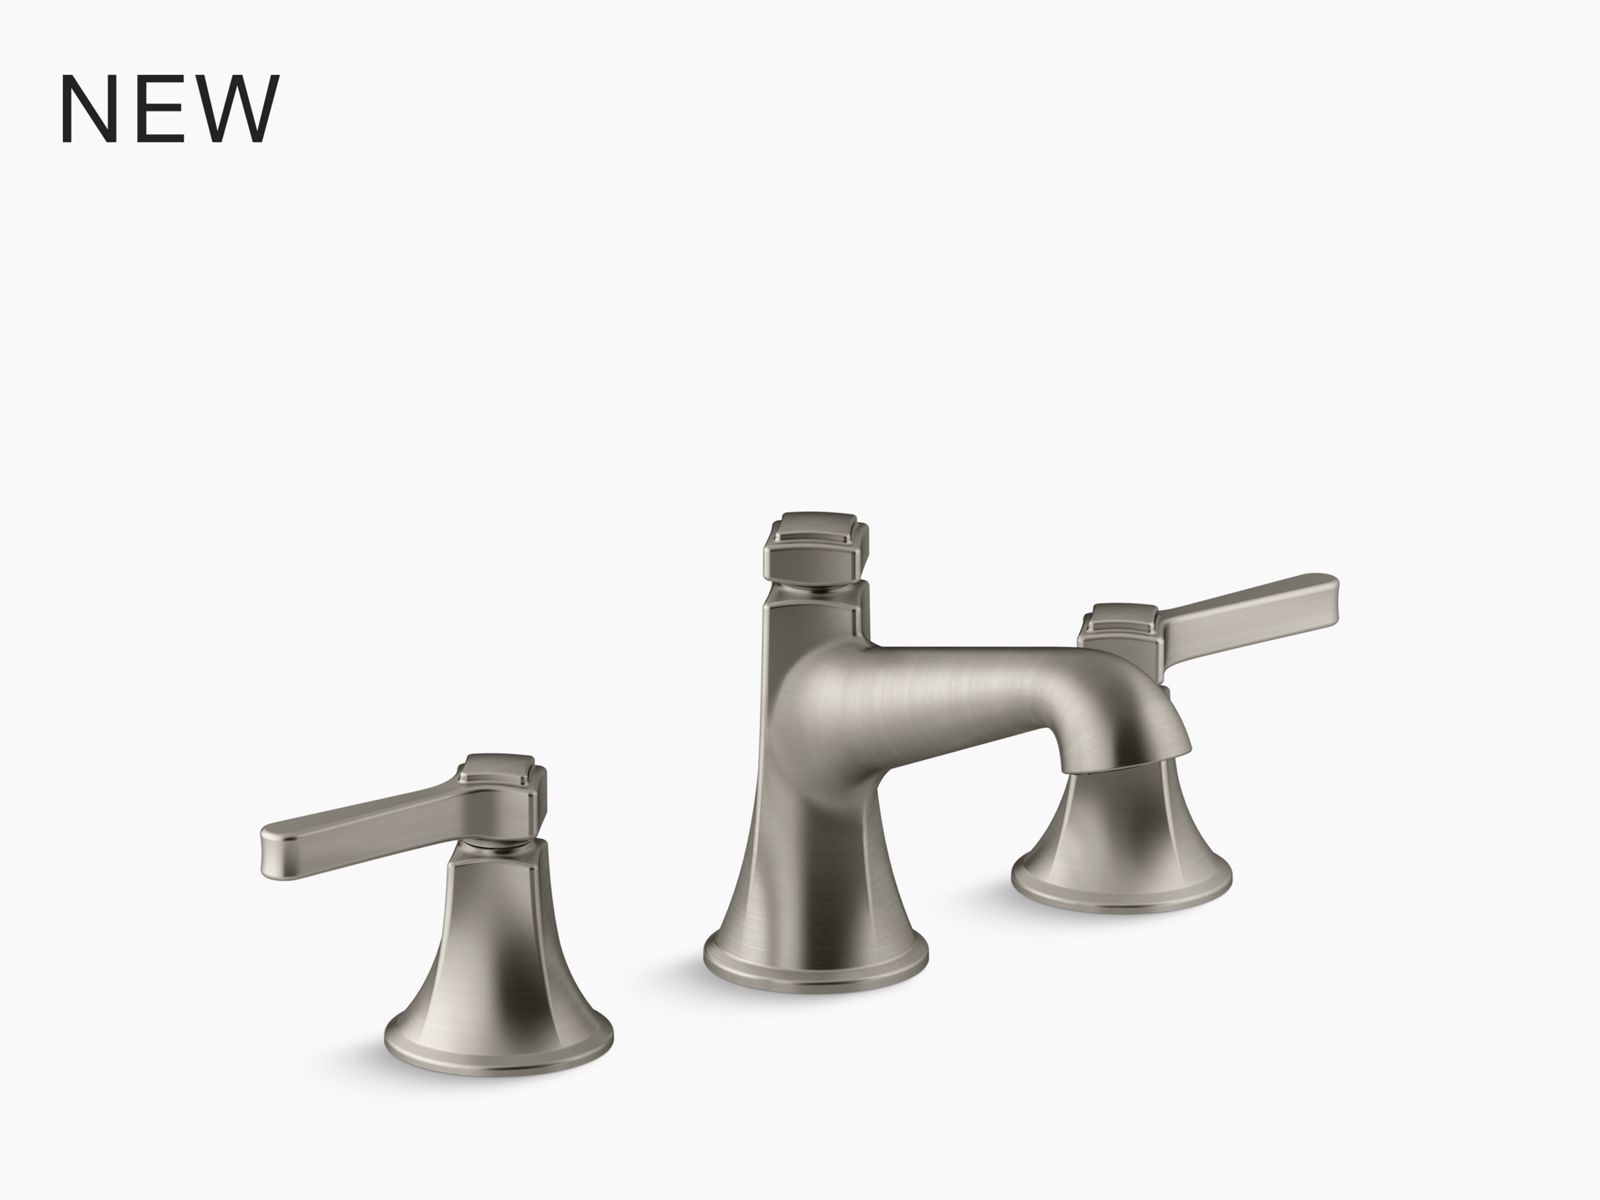 pinstripe pure rite temp pressure balancing bath and shower faucet trim with lever handle valve not included